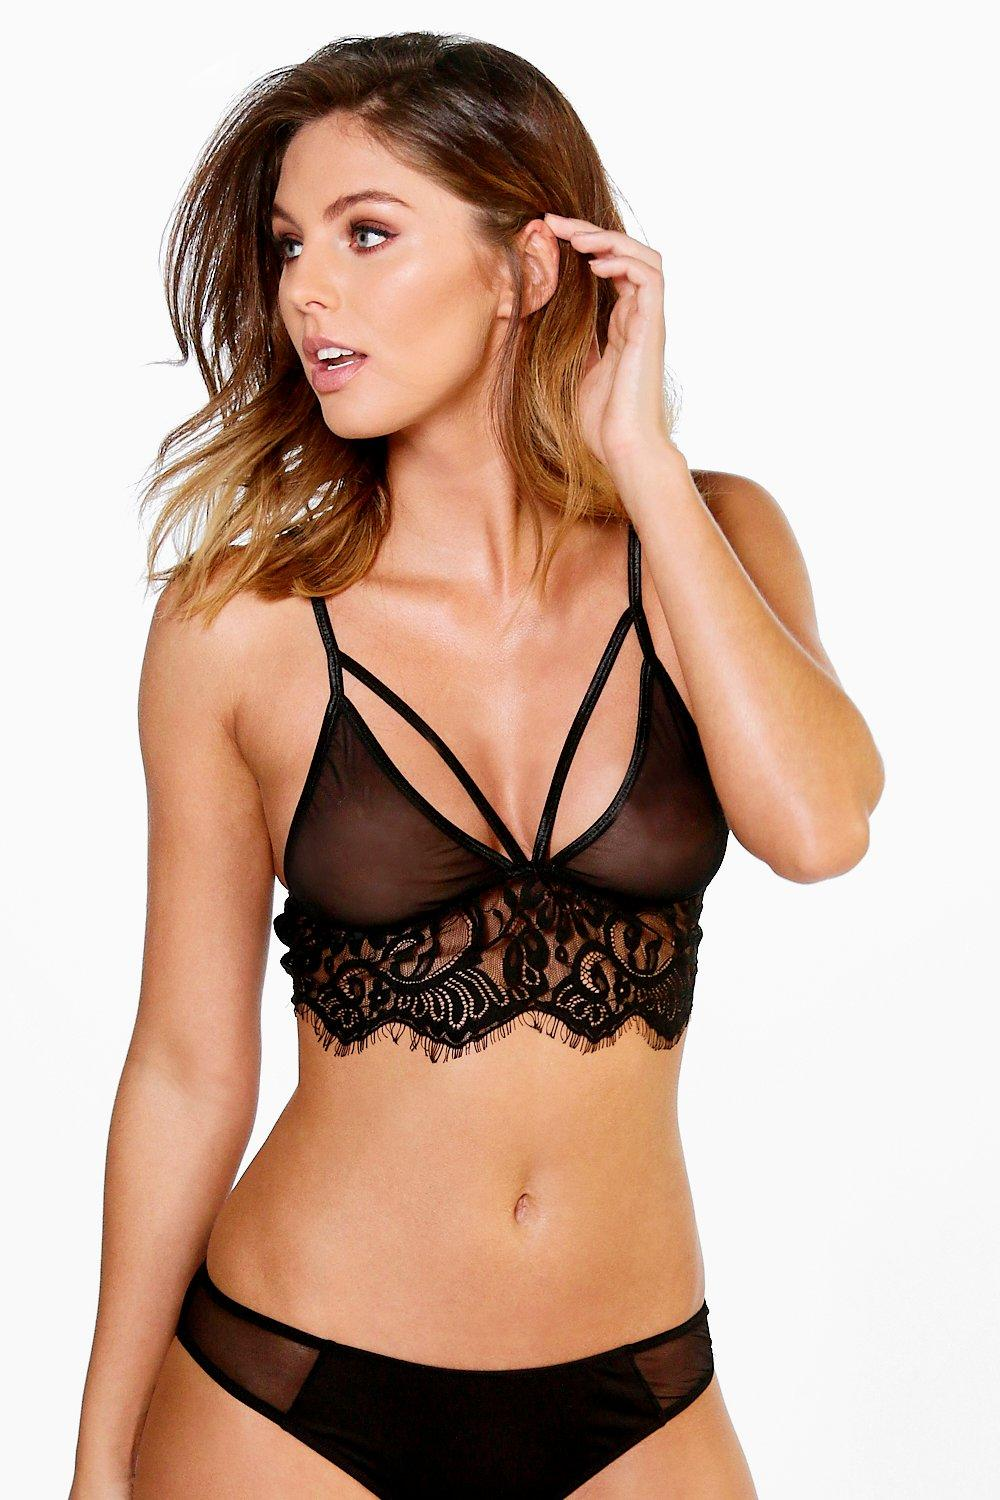 Megan Lace Trim Longline Triangle Bra